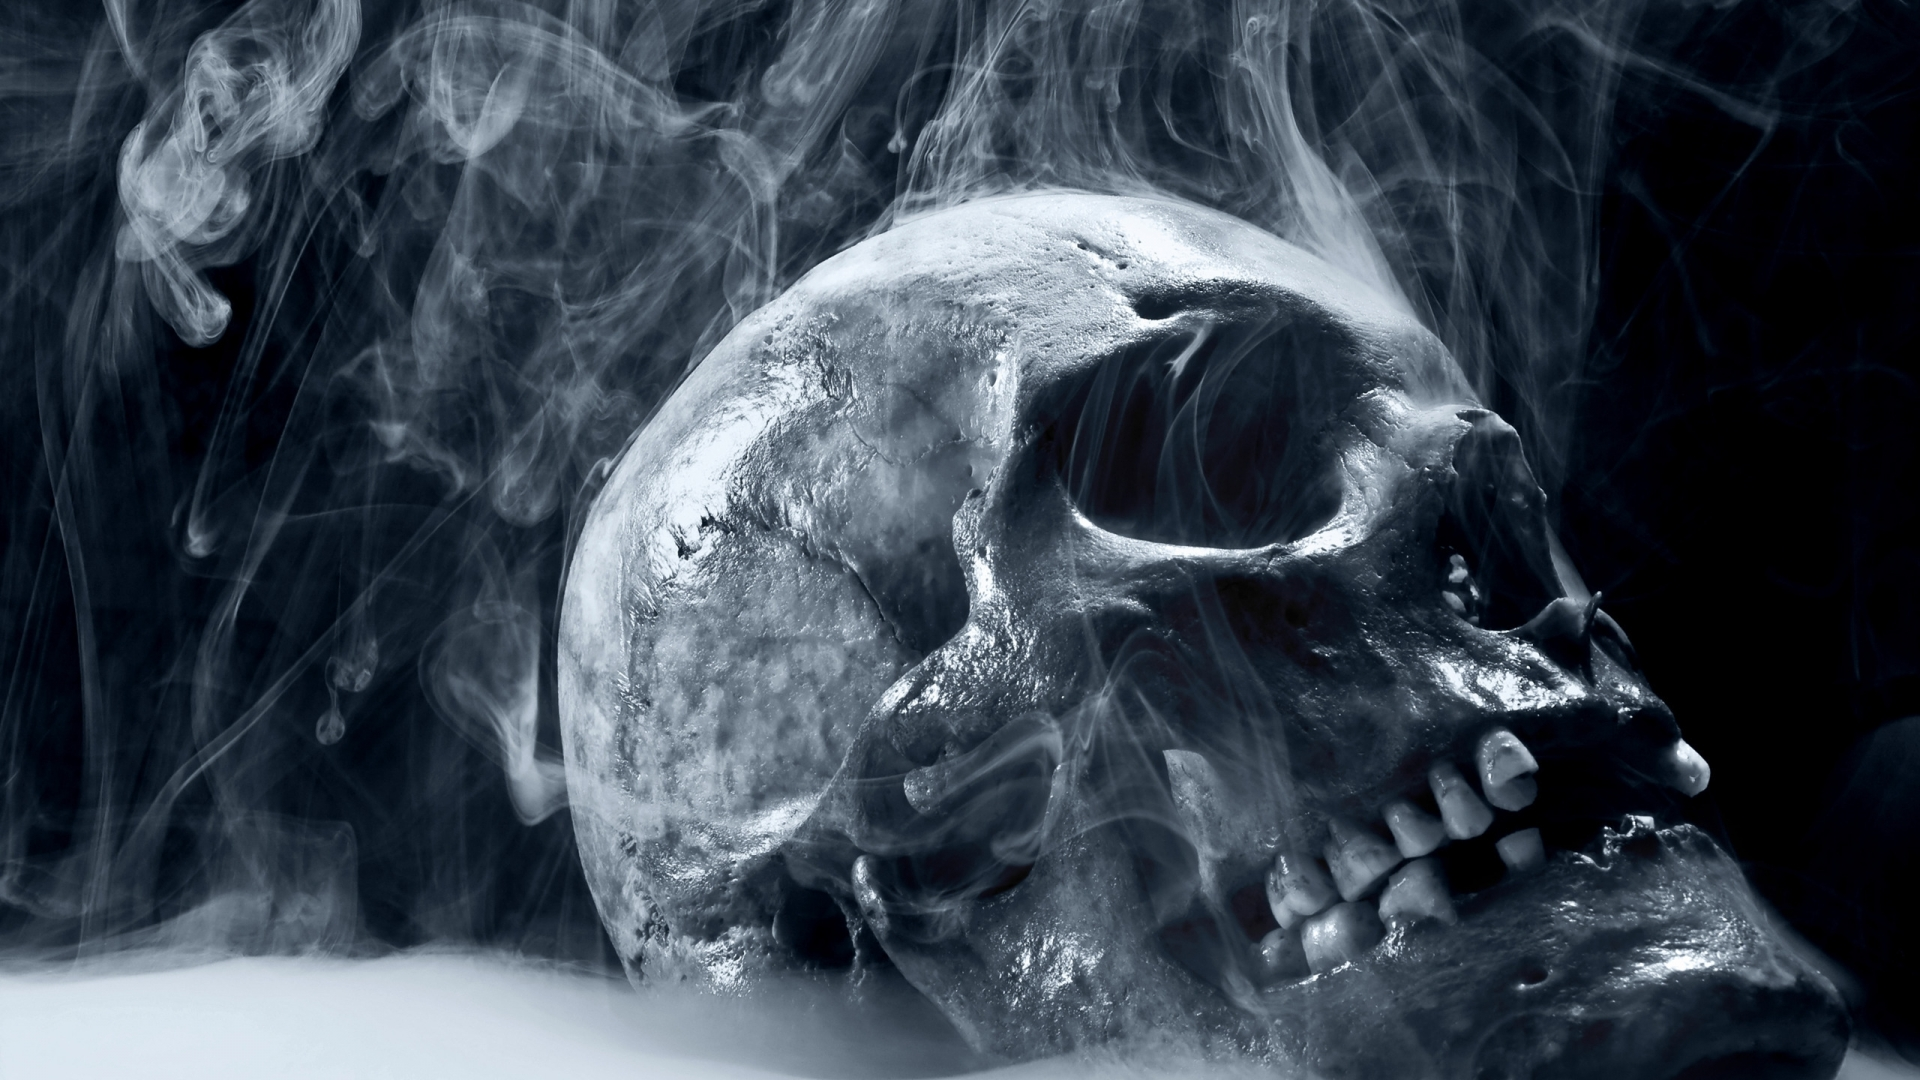 Scary Skull Wallpapers For Desktop 19201080 22746 HD Wallpaper Res 1920x1080